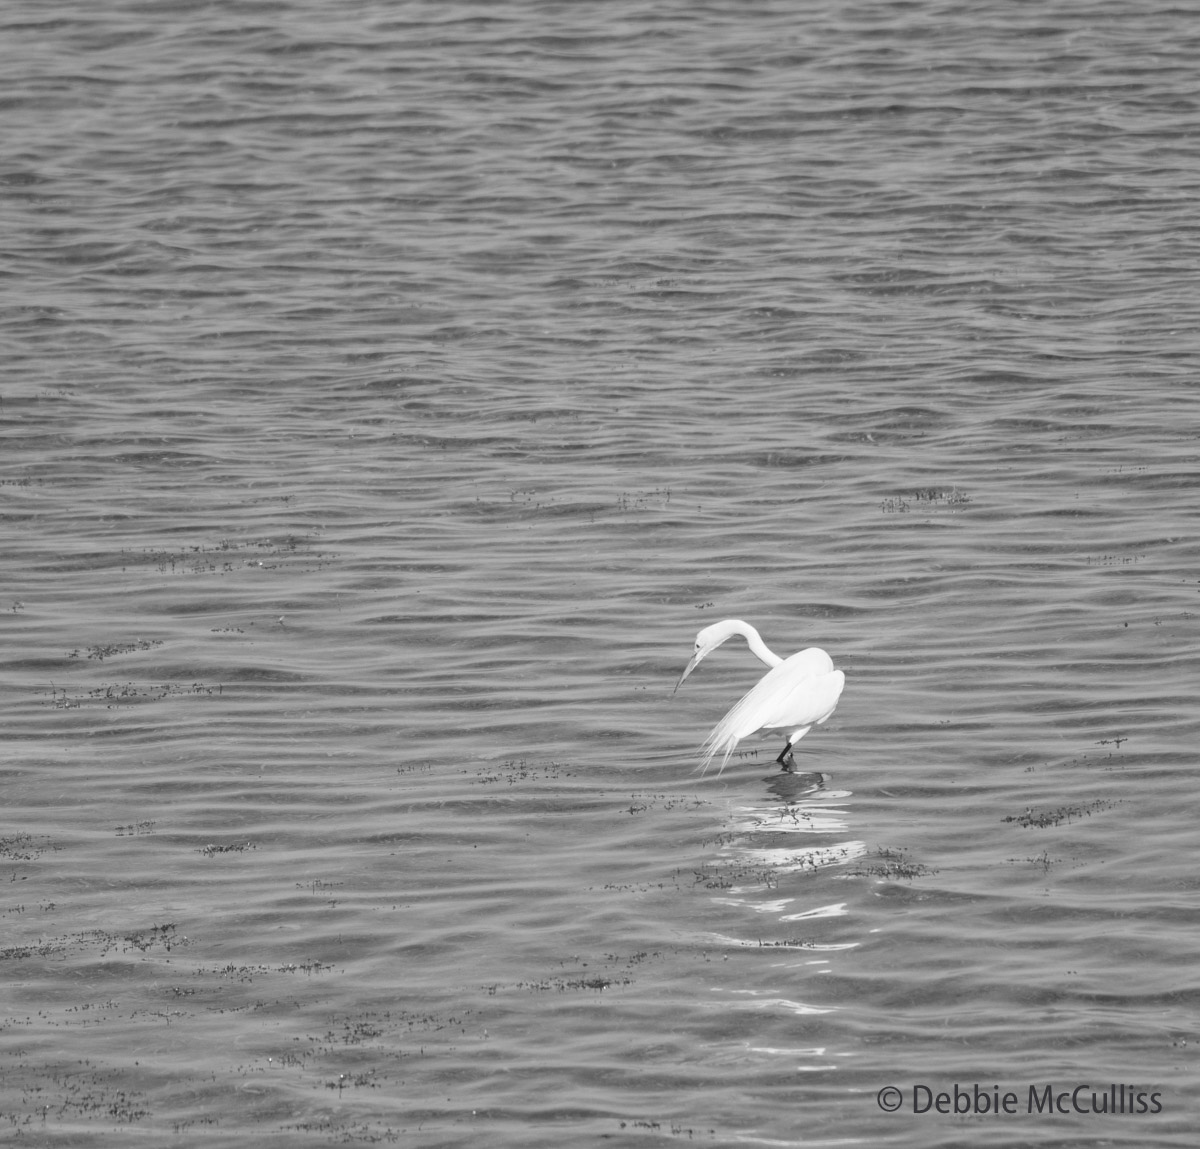 The egret is one of Florida's most iconic birds.